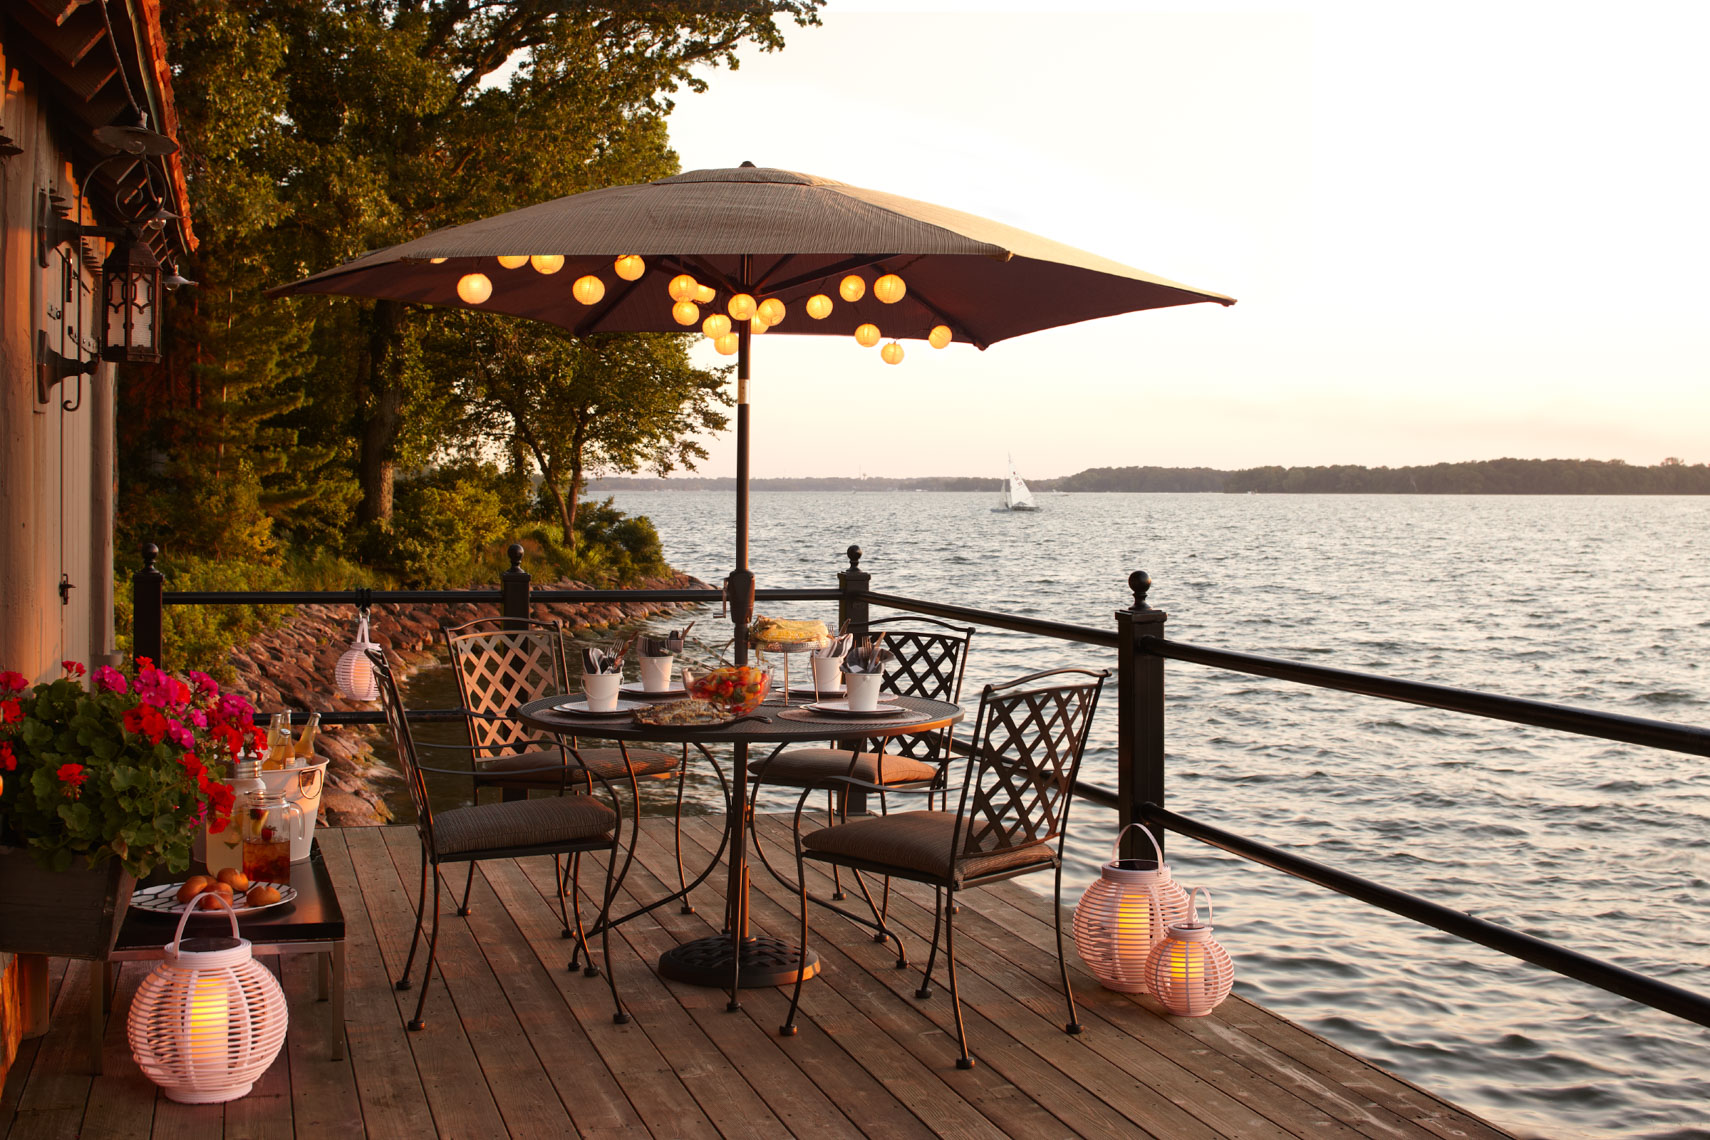 Outdoor seating collection on dock with brown umbrella on a lake